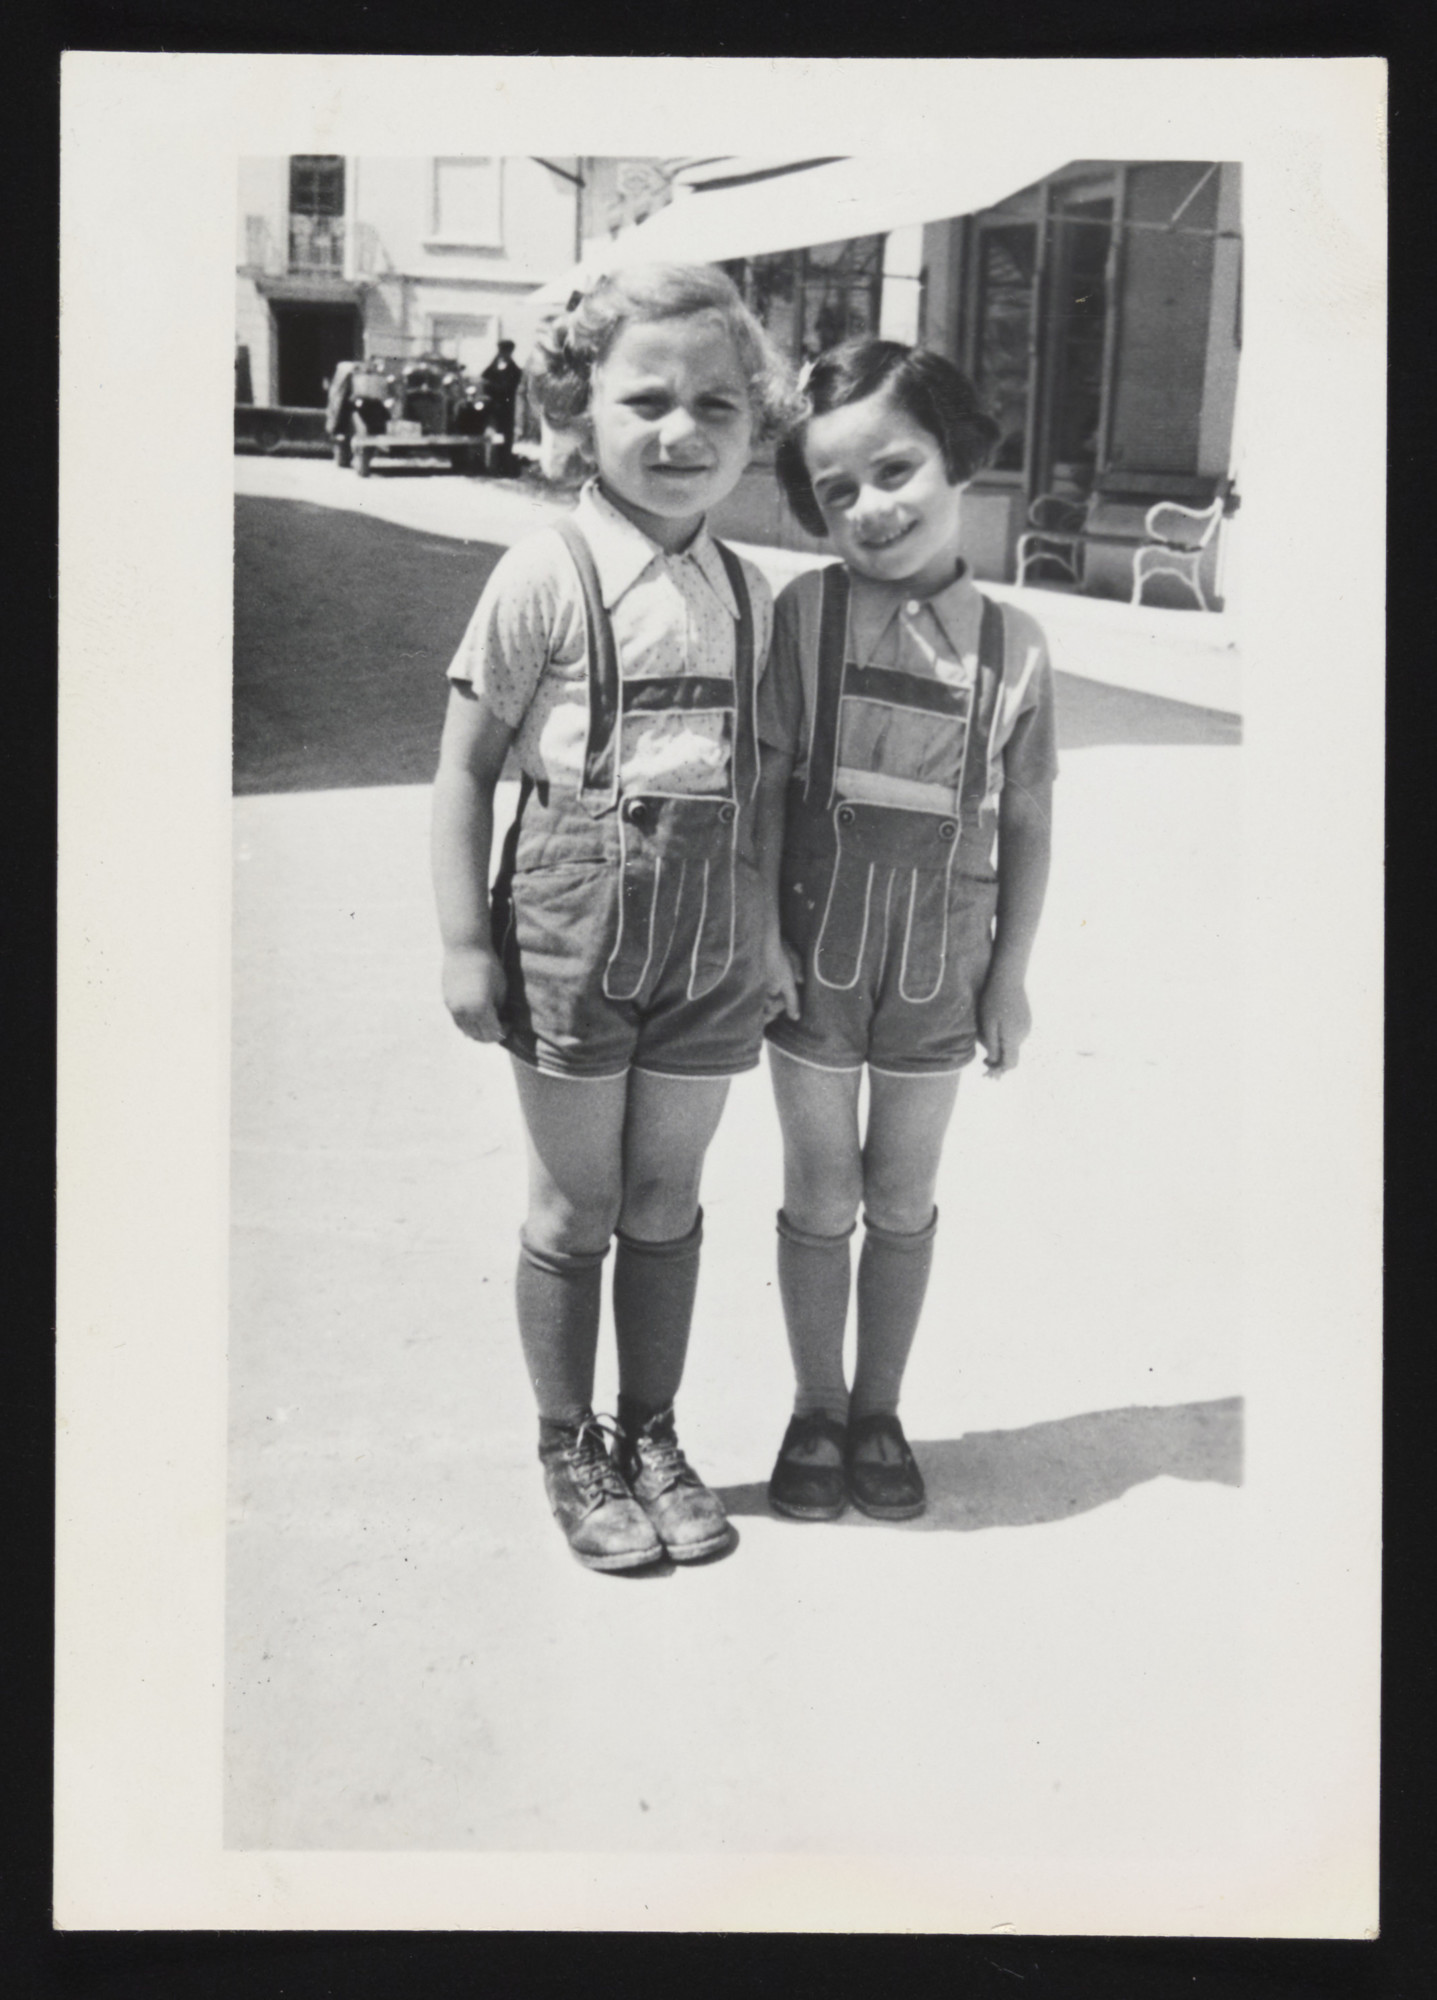 Tamar Hendel and her cousin Gisele Kremer pose on a street in prewar Croatia.